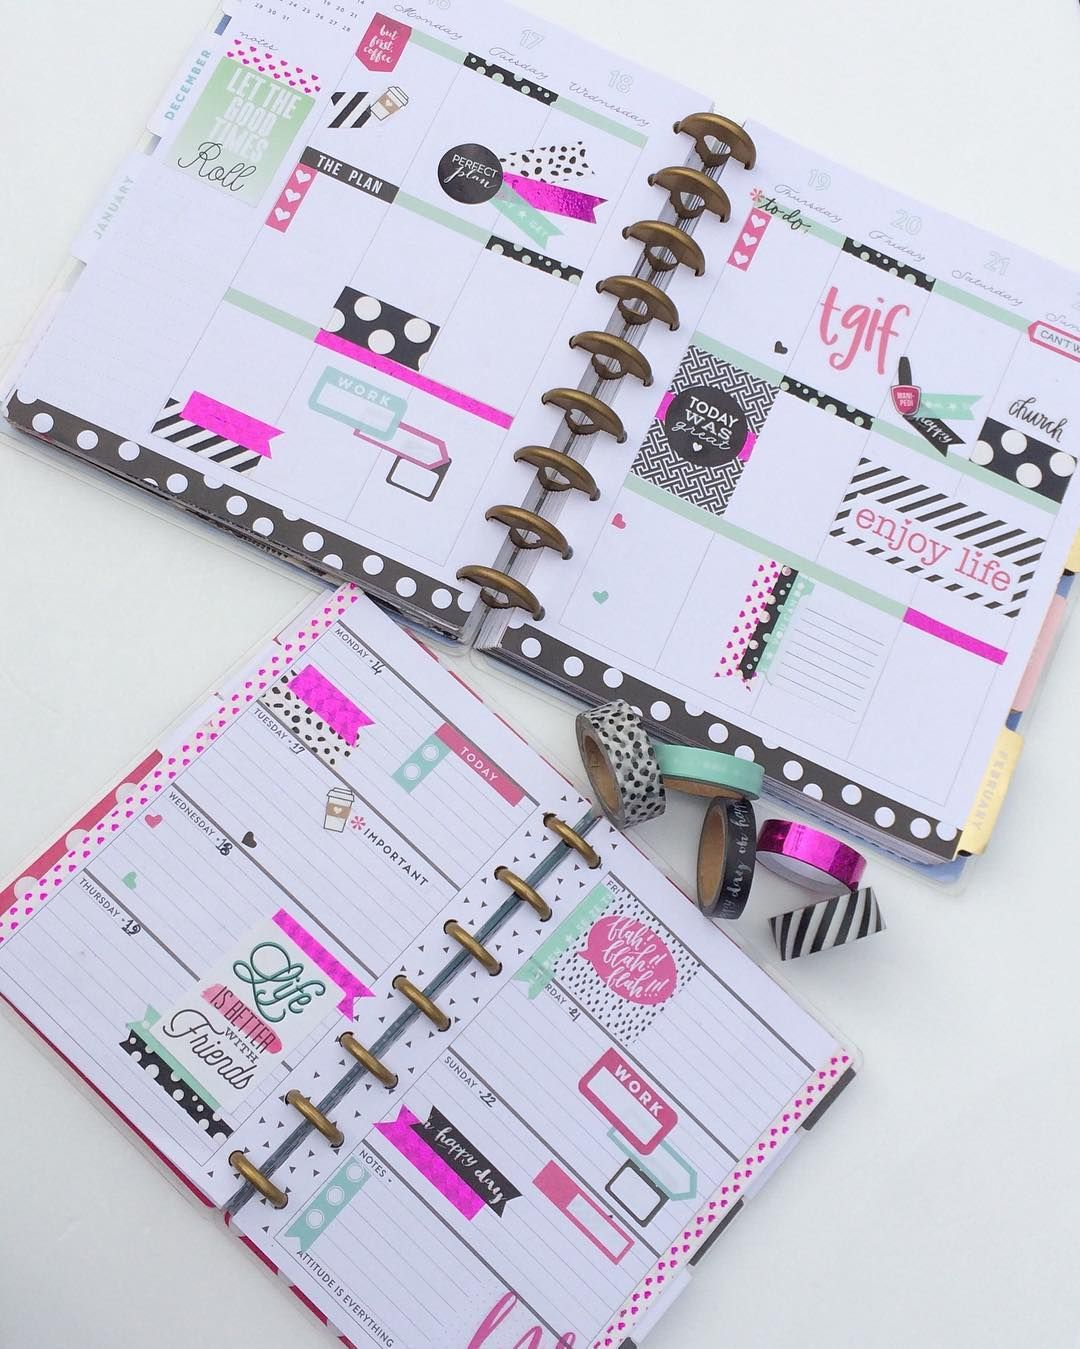 Pin by Michelle Vosper on planning | Happy planner, Mini